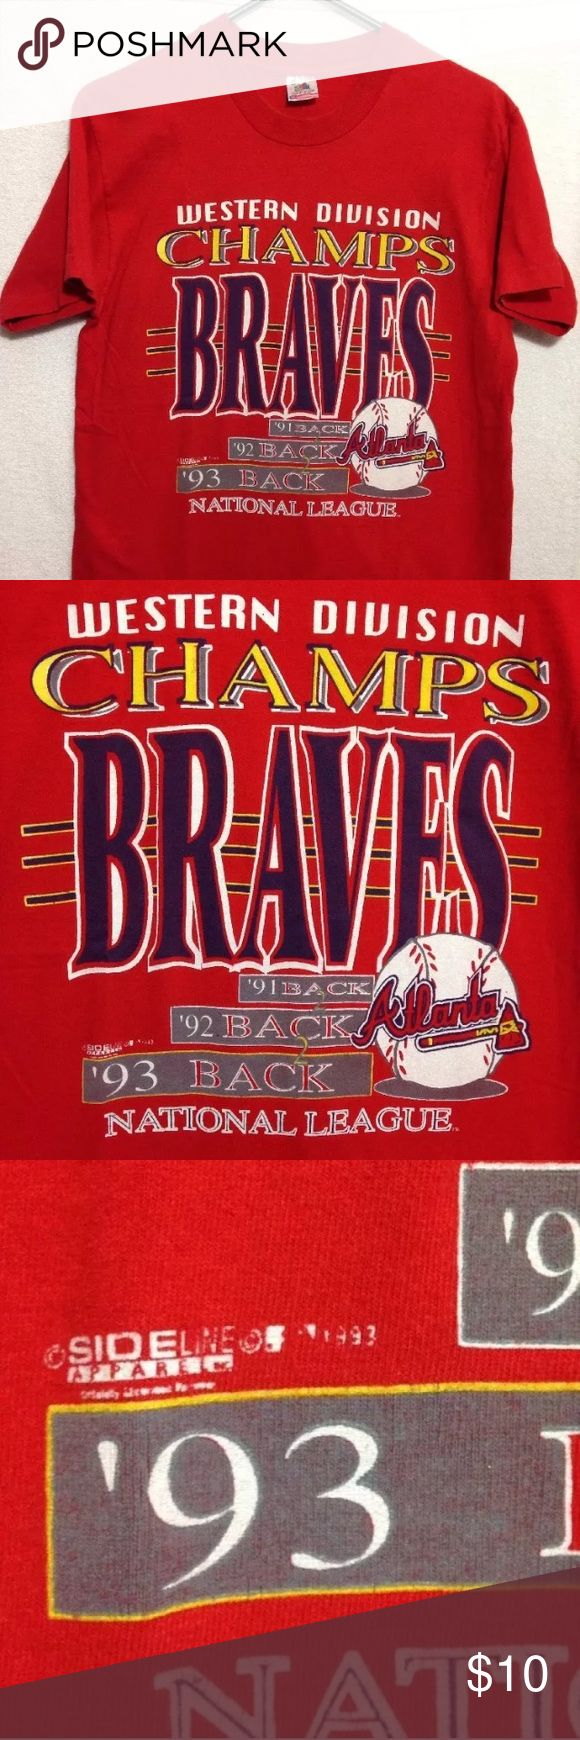 Vtg t-shirt Atlanta Braves 3 time champions 91-93 Here is a vintage t shirt from 1993 that commemorated their 3 back to back to back NL West division championships from 1991, 1992 and 1993.  Mens size medium. Still has nice color and would be a great throwback to wear to the new Suntrust Park on the home opener on April 14th.  Measurements: armpit to armpit: 19  inches length: 28  inches Fruit of the Loom Shirts Tees - Short Sleeve